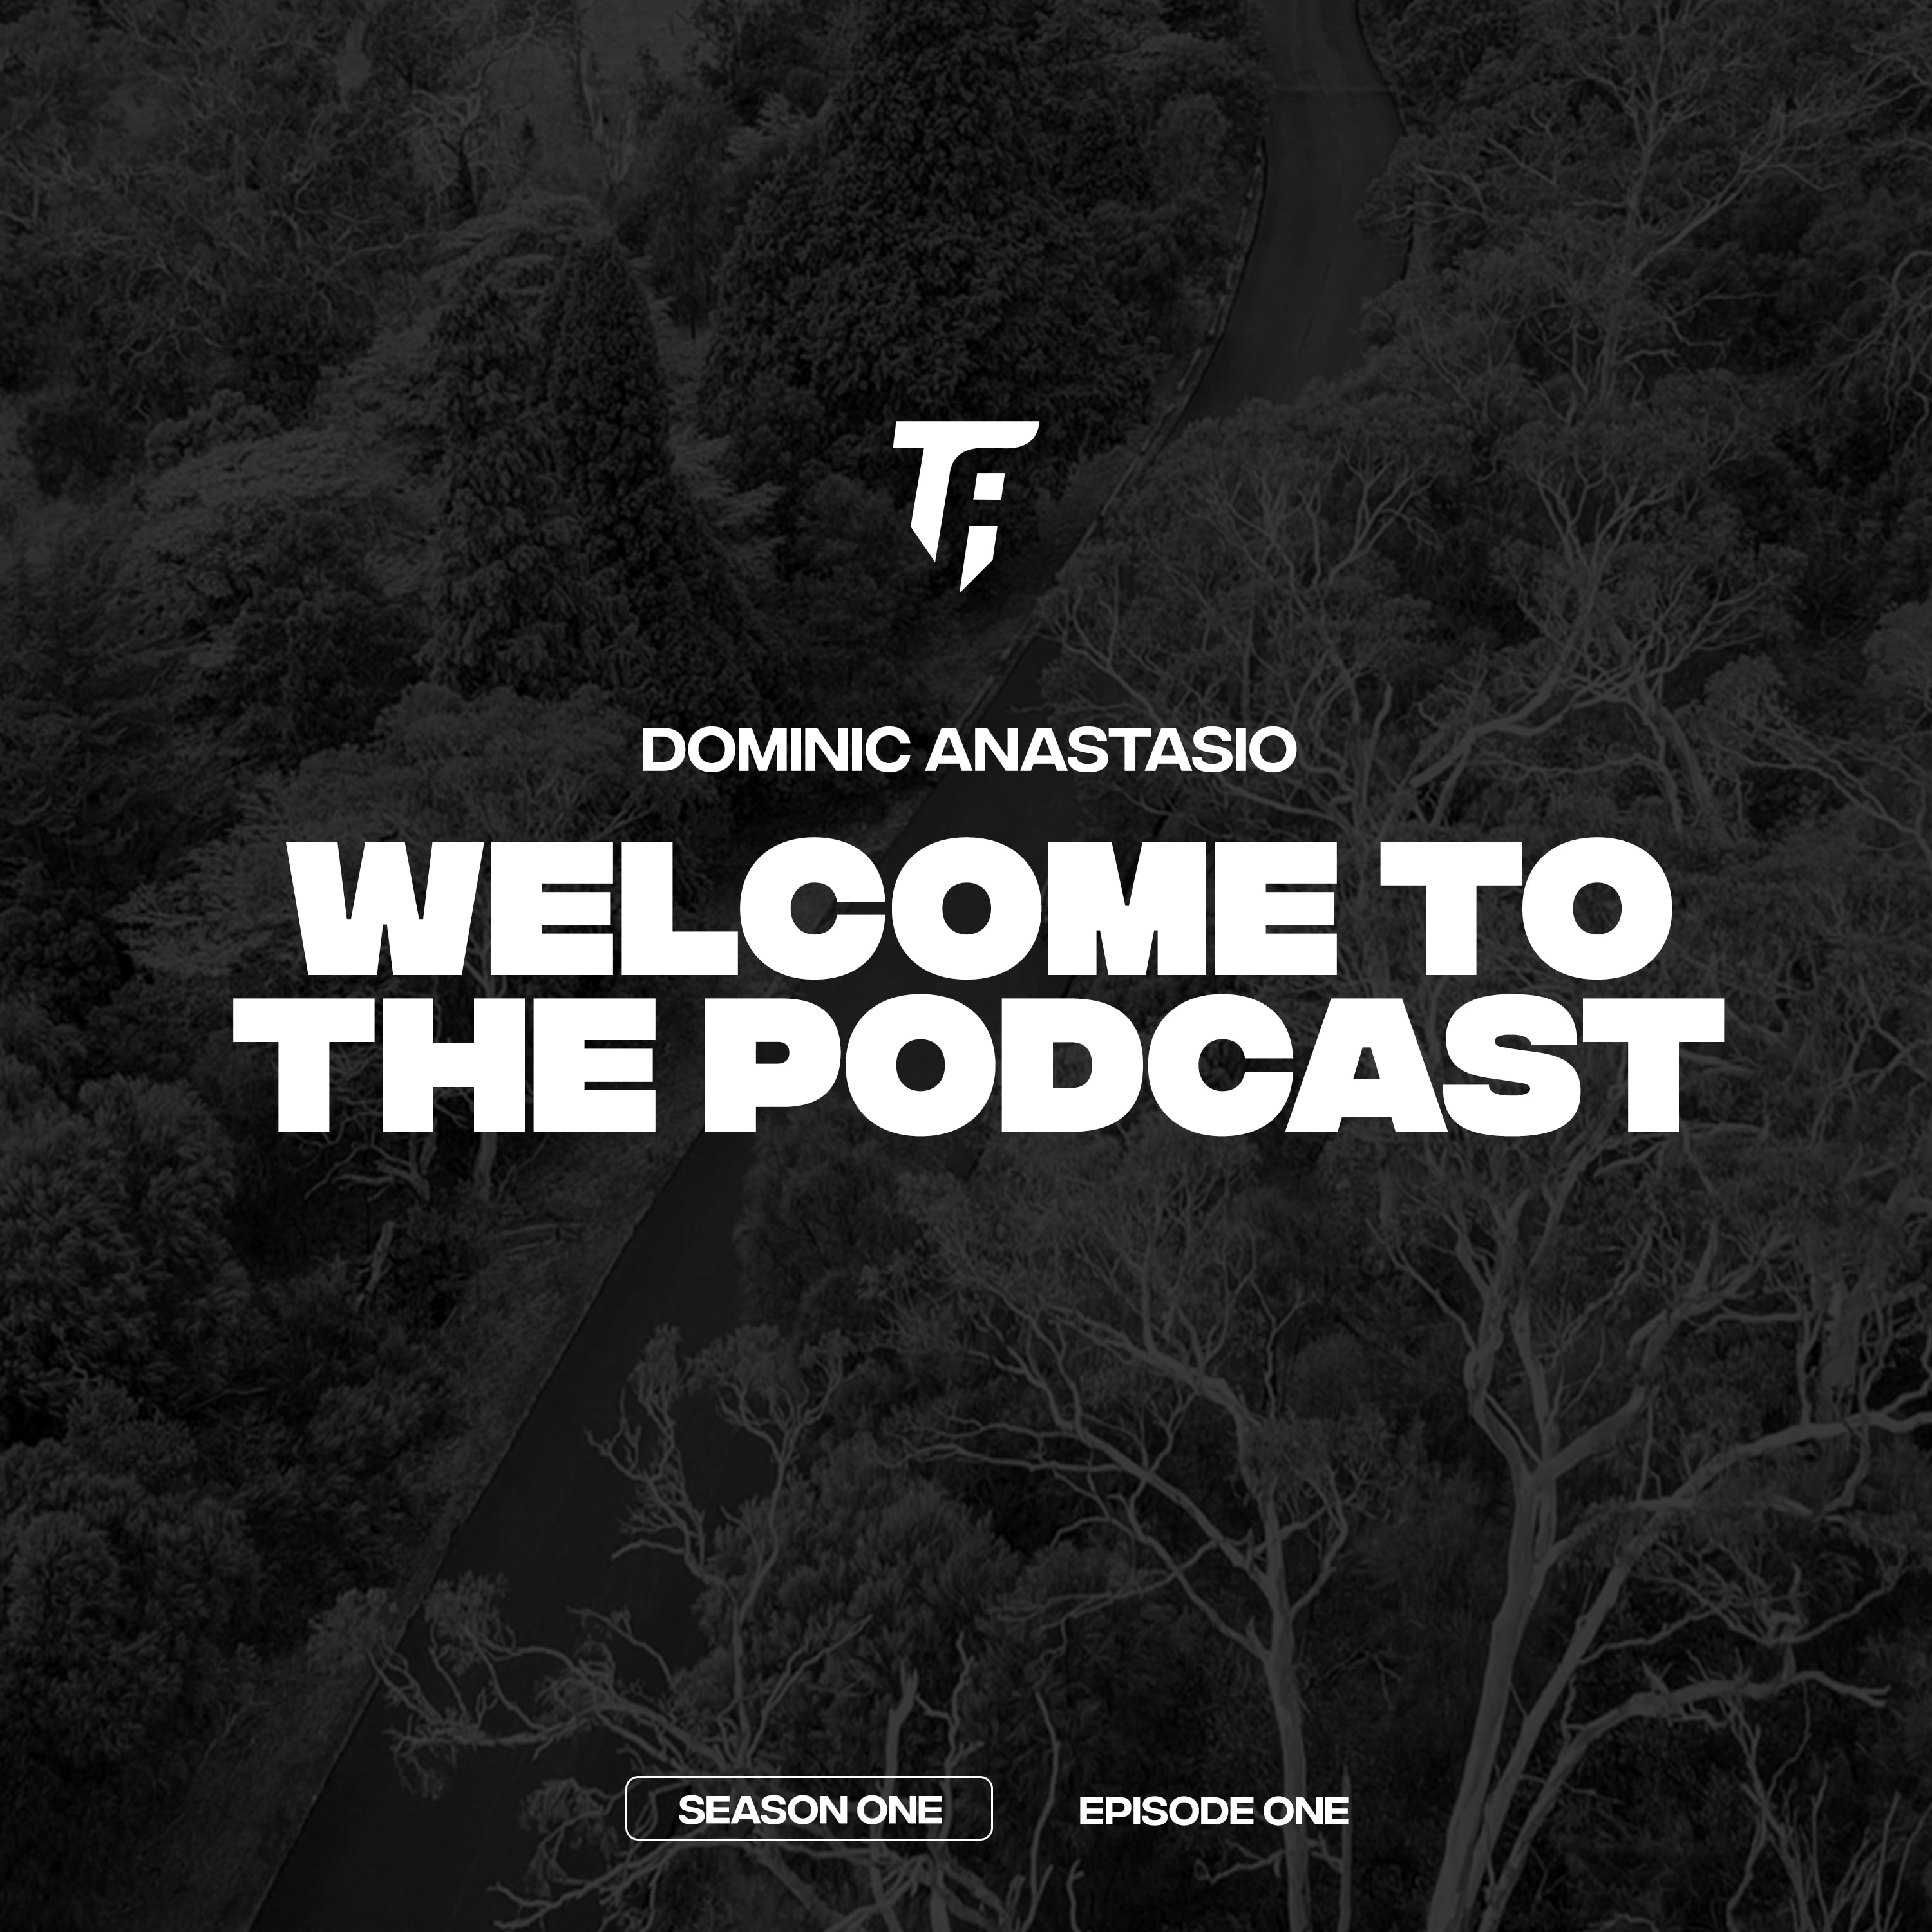 Welcome To The Podcast